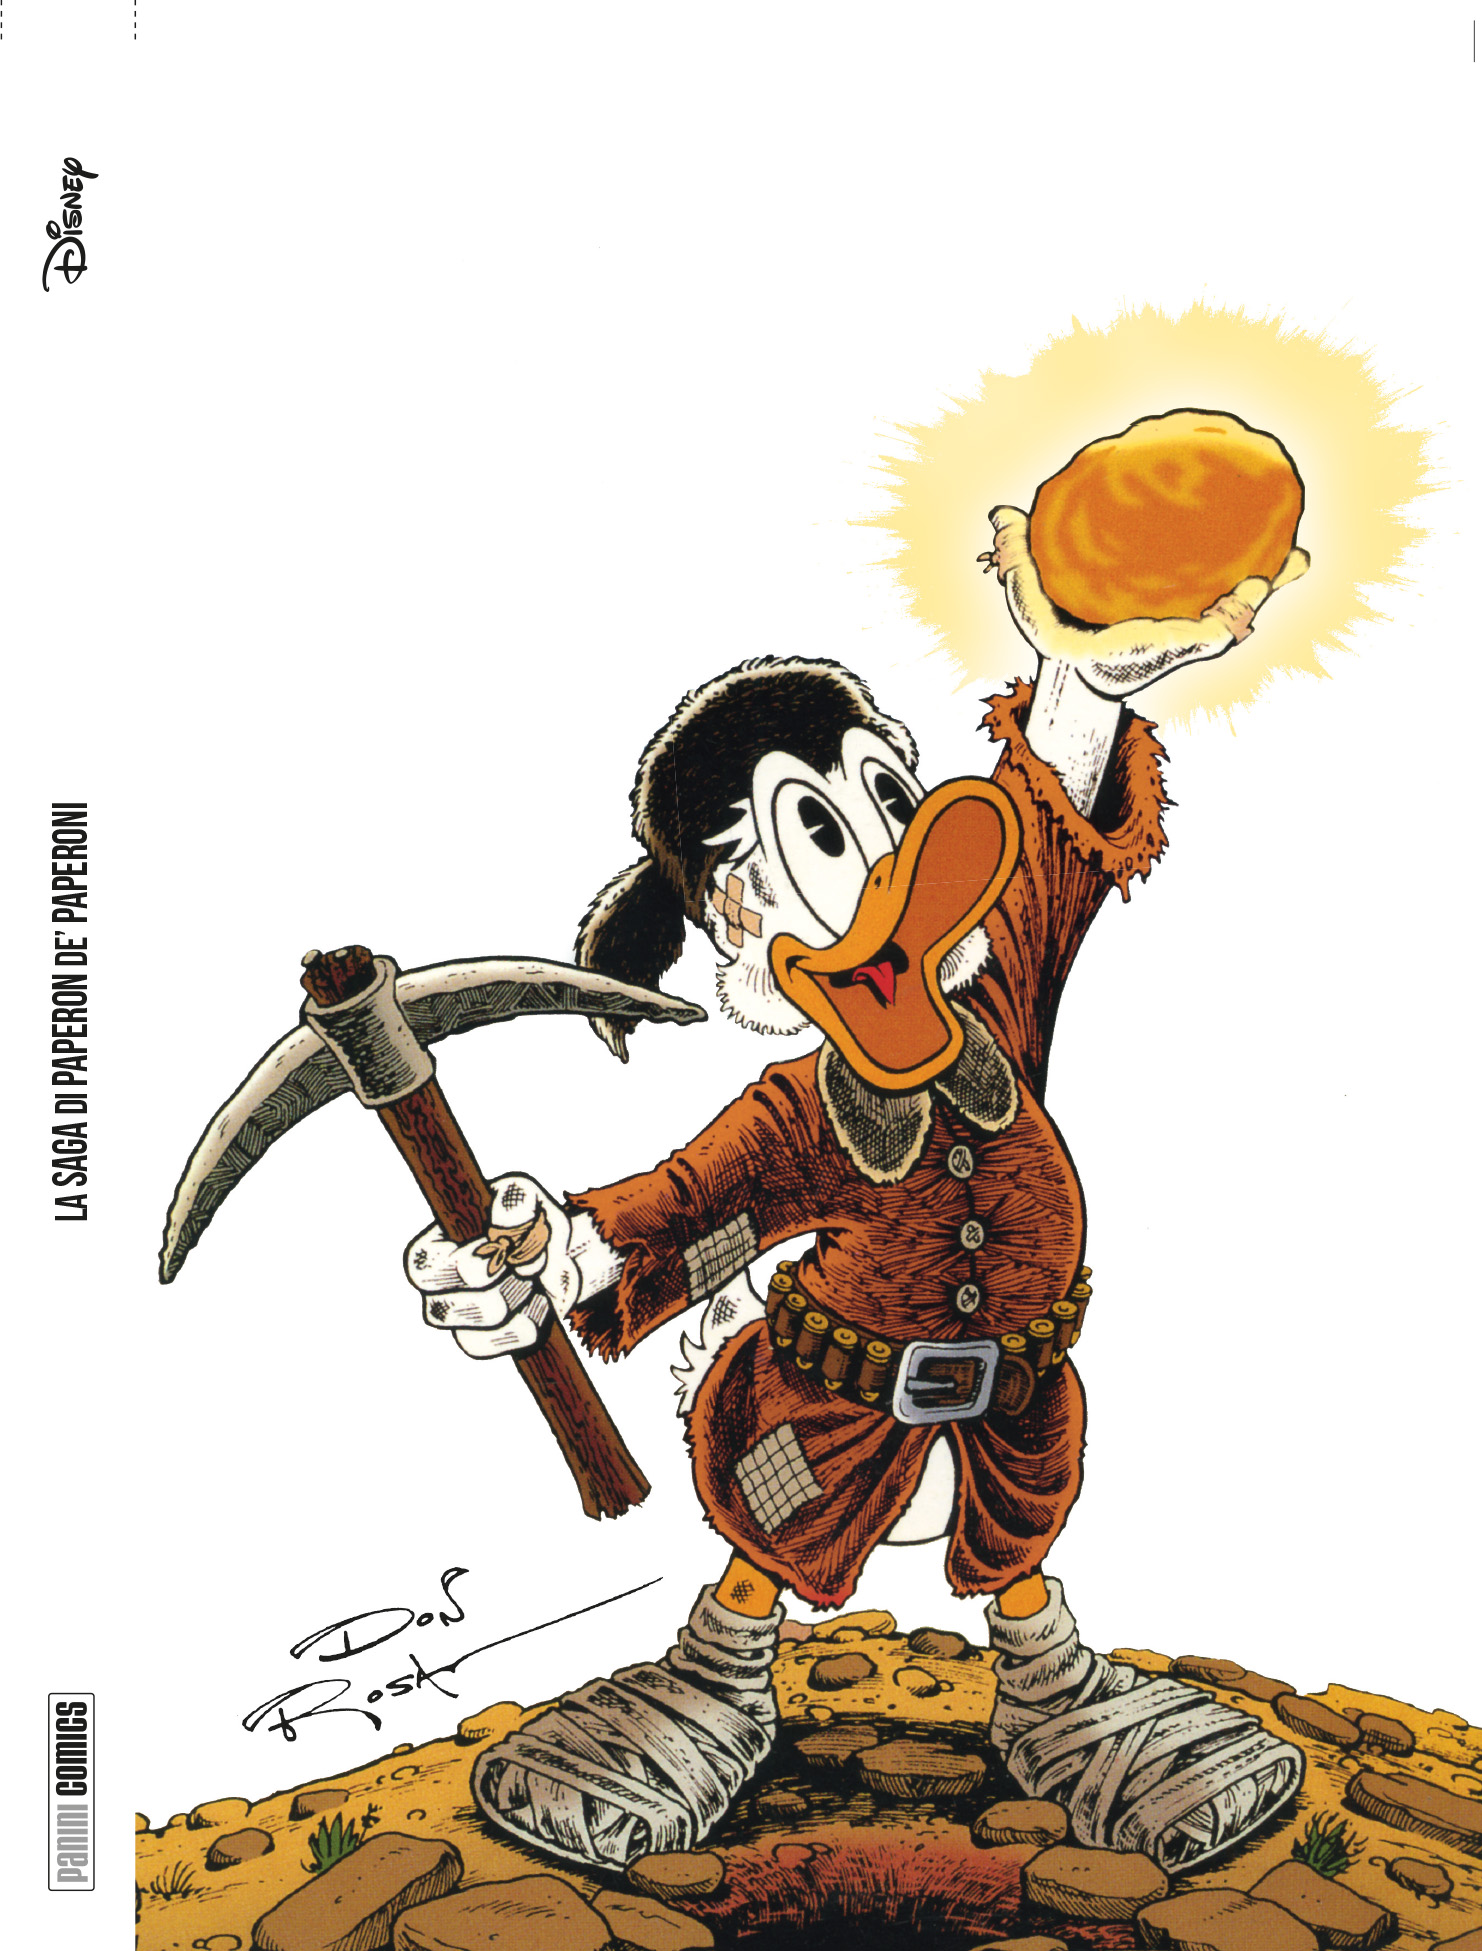 Cover variant Tesori International 1 - La Saga di Paperon de' Paperoni - Don Rosa